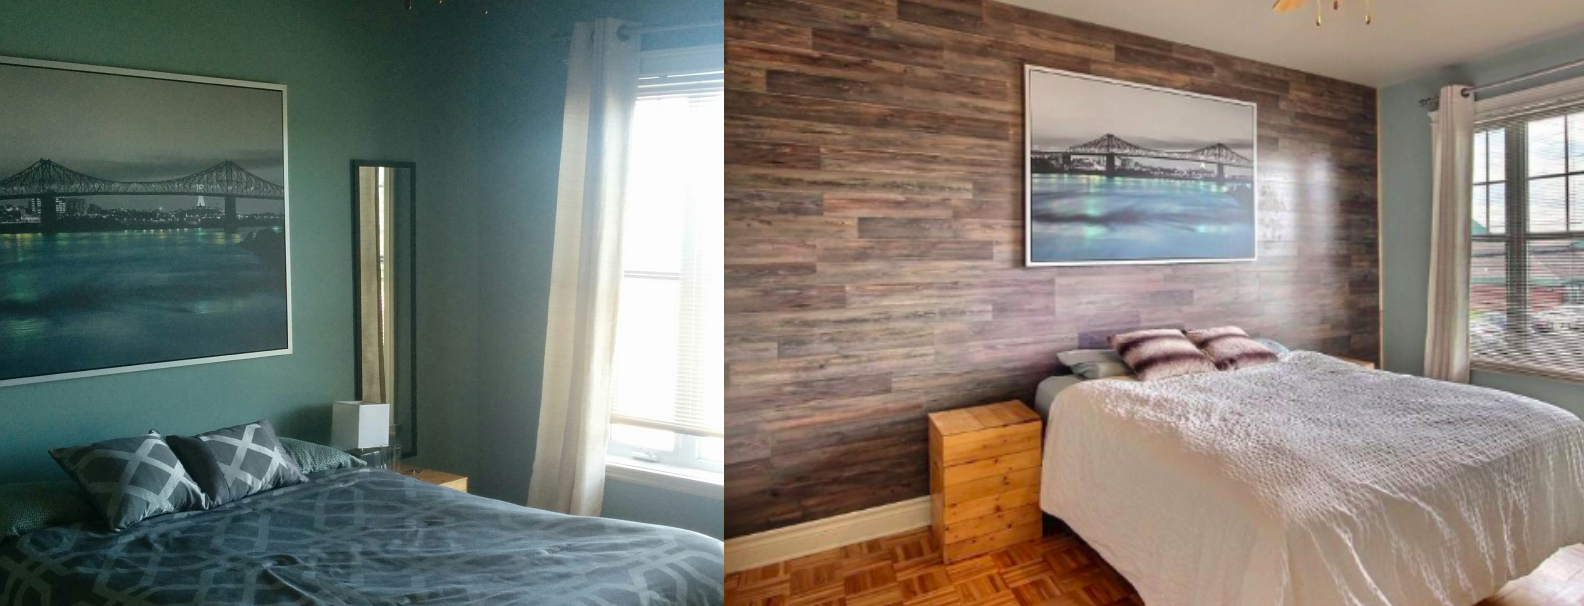 DIY cheap remodelling projects